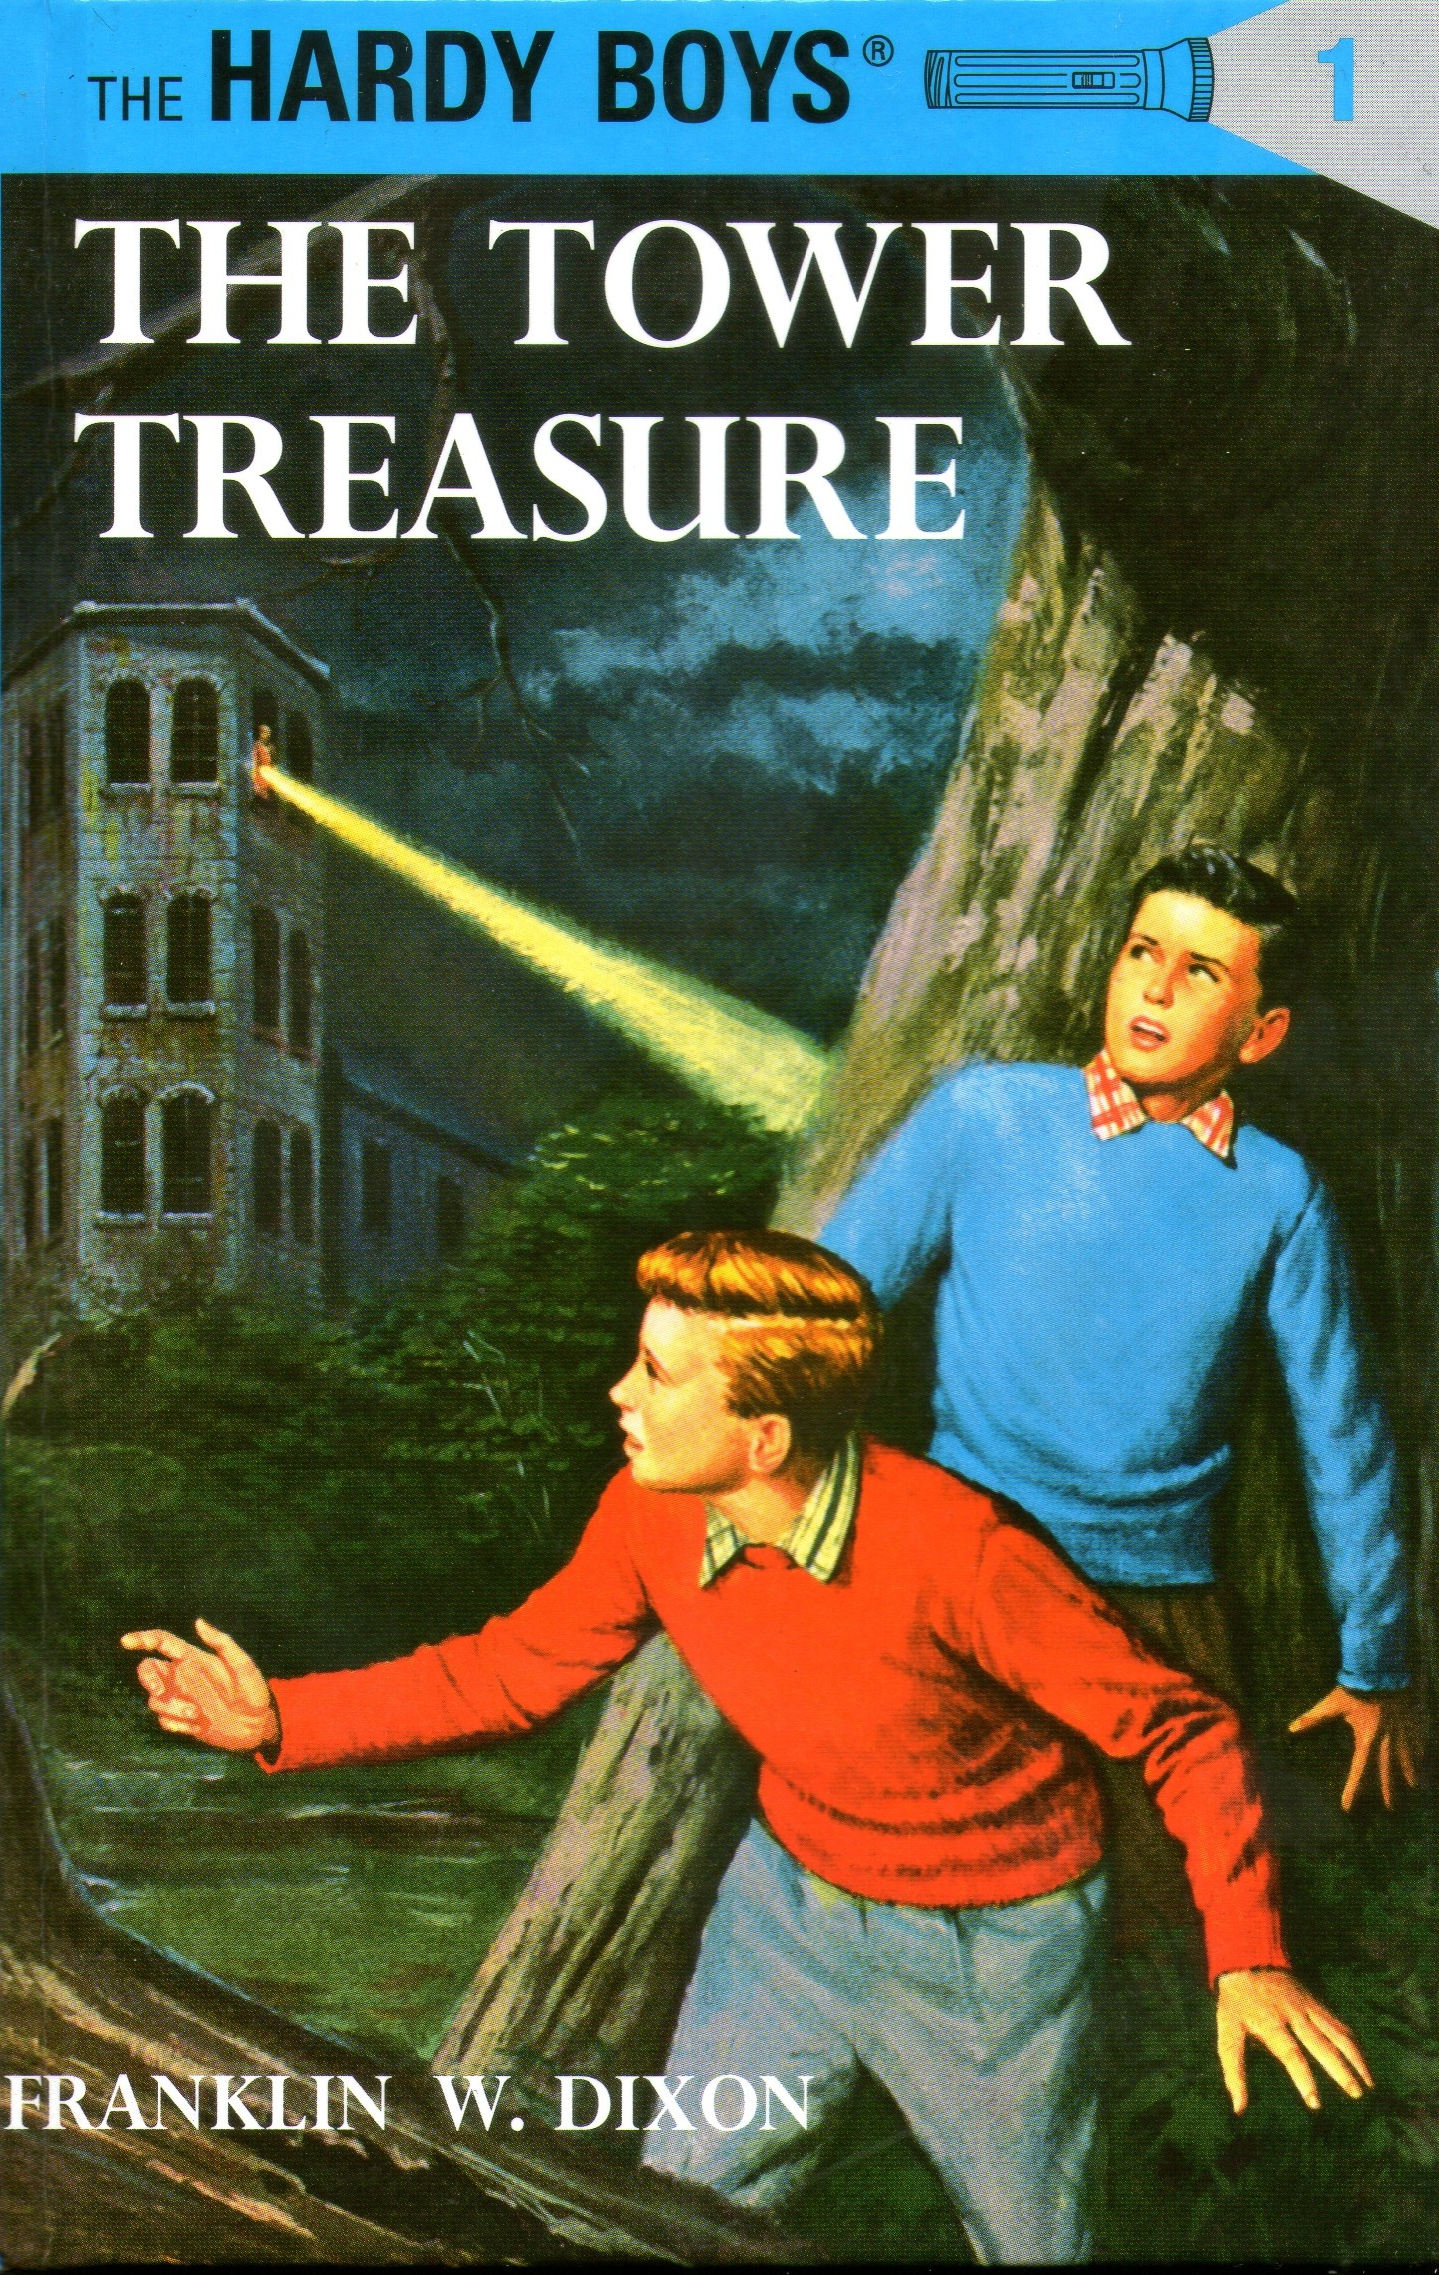 Nancy Drew Mystery Stories: The Mysterious Image No. 74 by Carolyn Keene (1984,